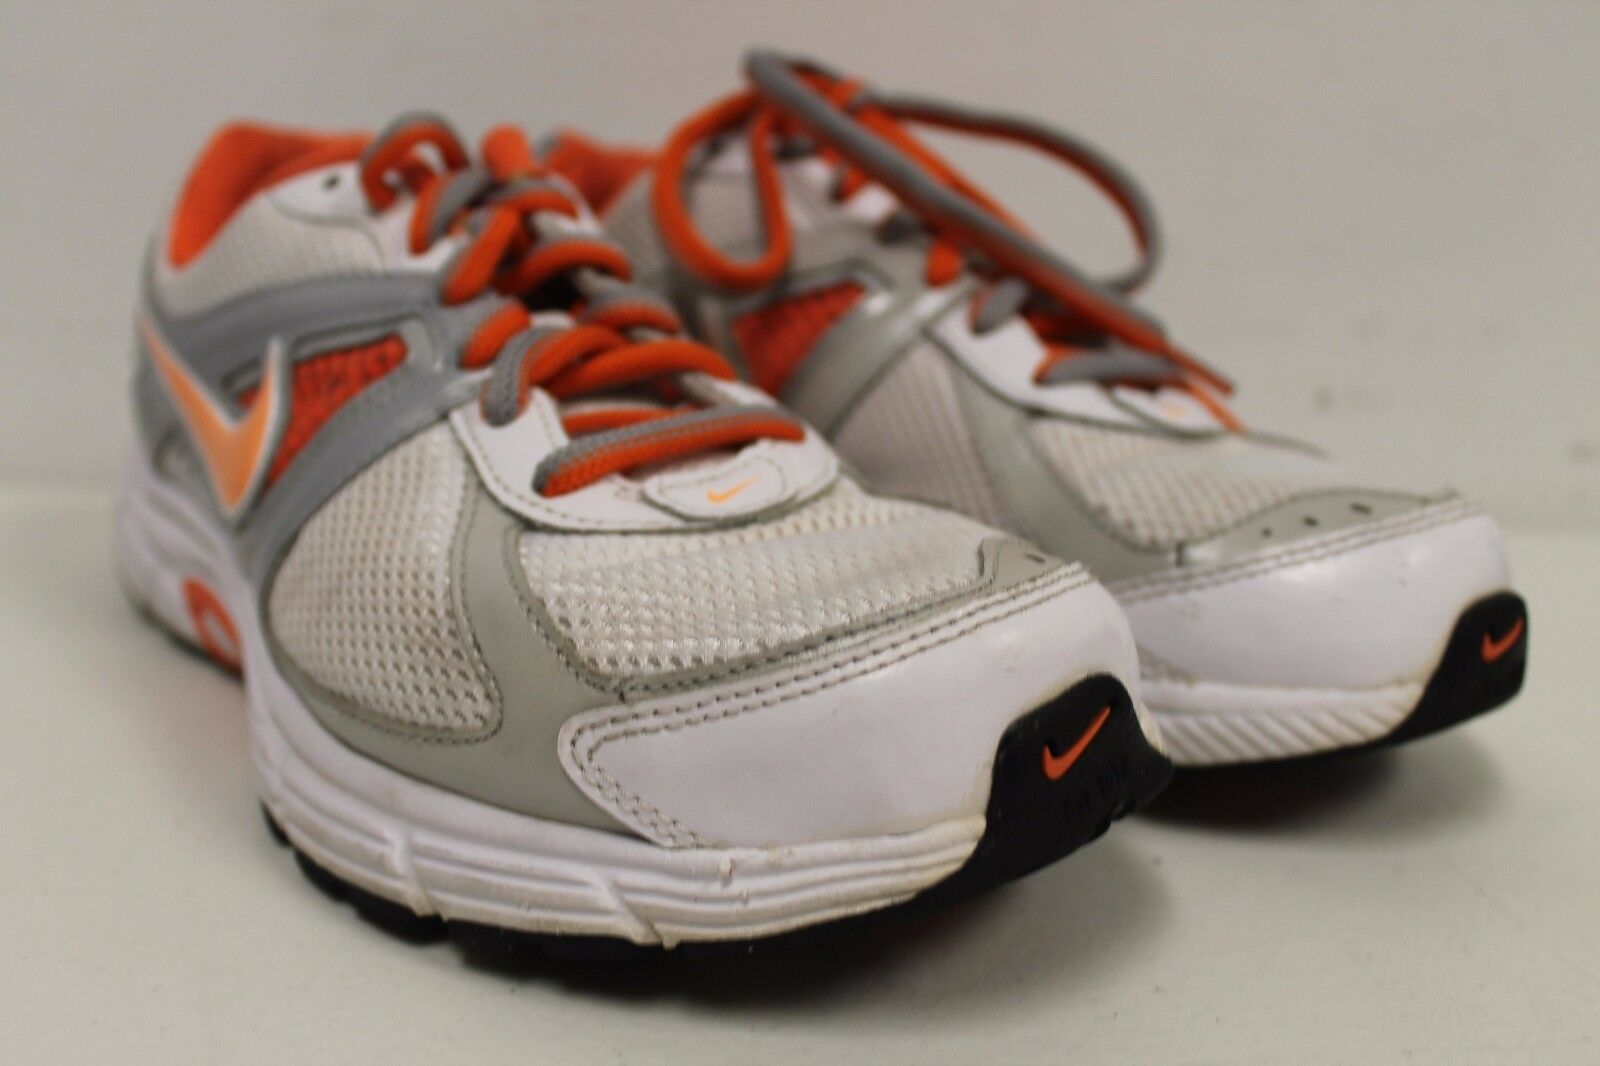 Nike Dart 9 - 443863-018 - Grey/Orange - Women's size 9.5 The most popular shoes for men and women